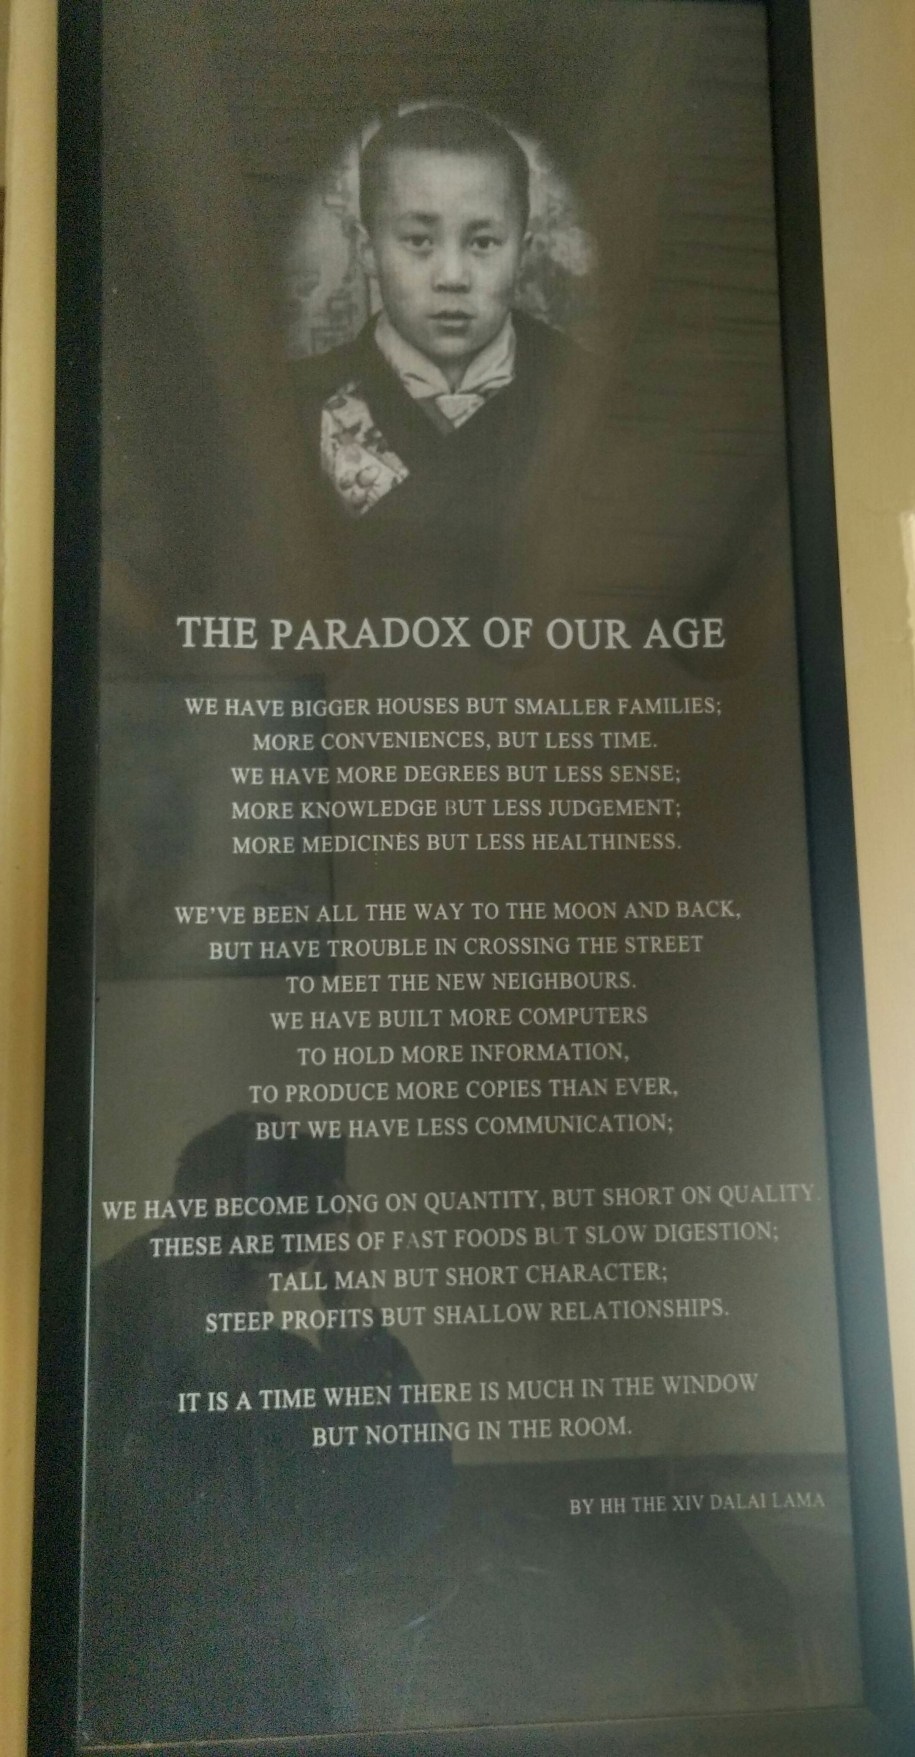 Paradox of our age